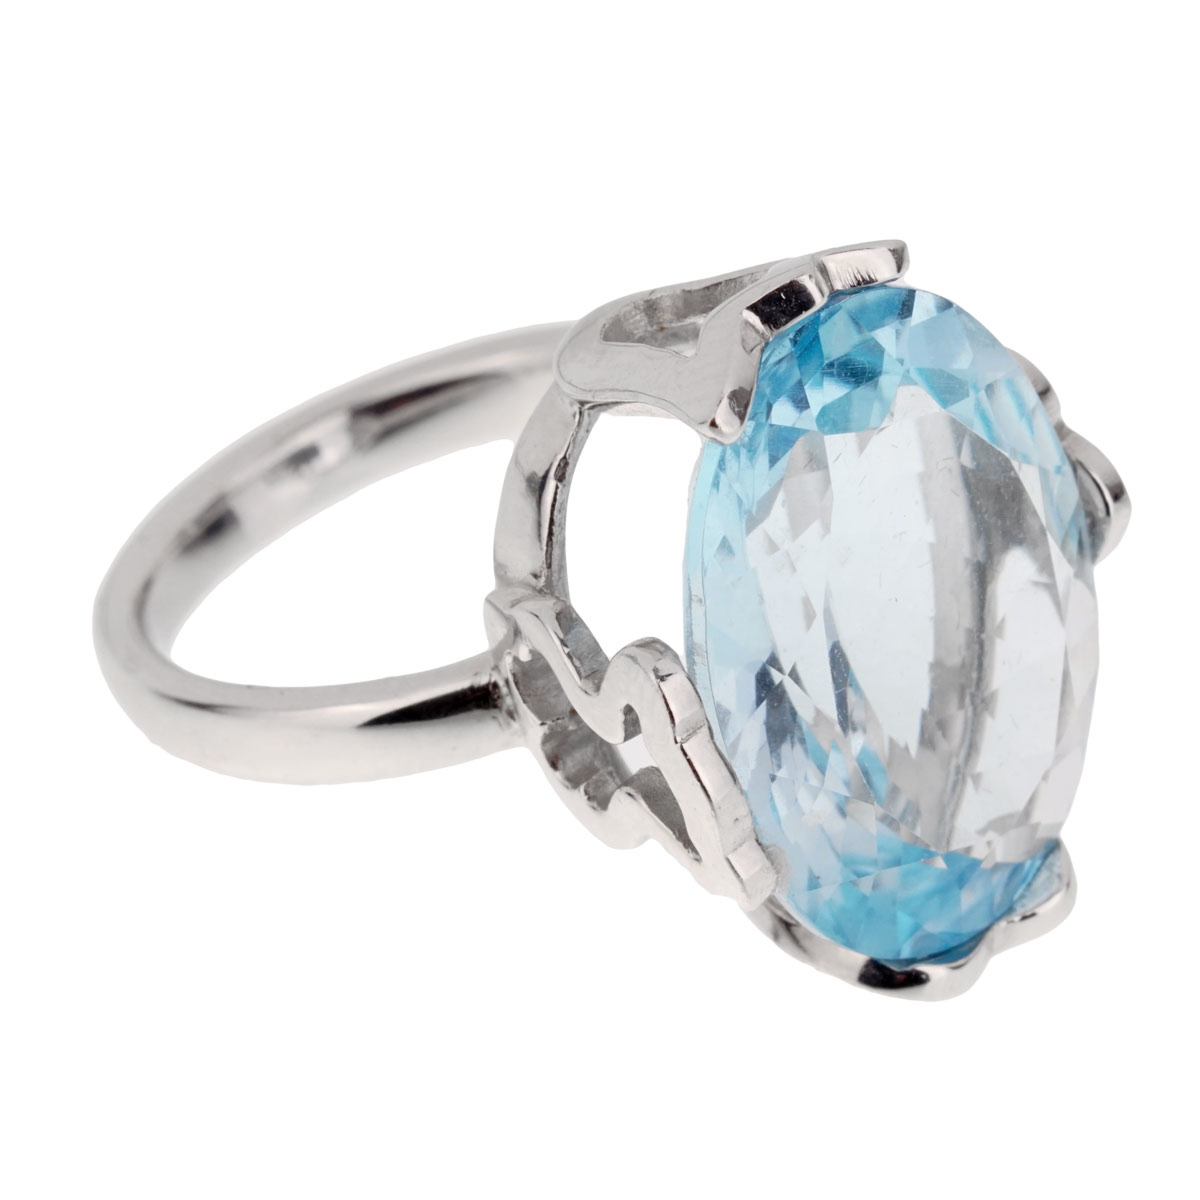 Tous 21ct Blue Topaz White Gold Cocktail Ring - Tous Jewelry